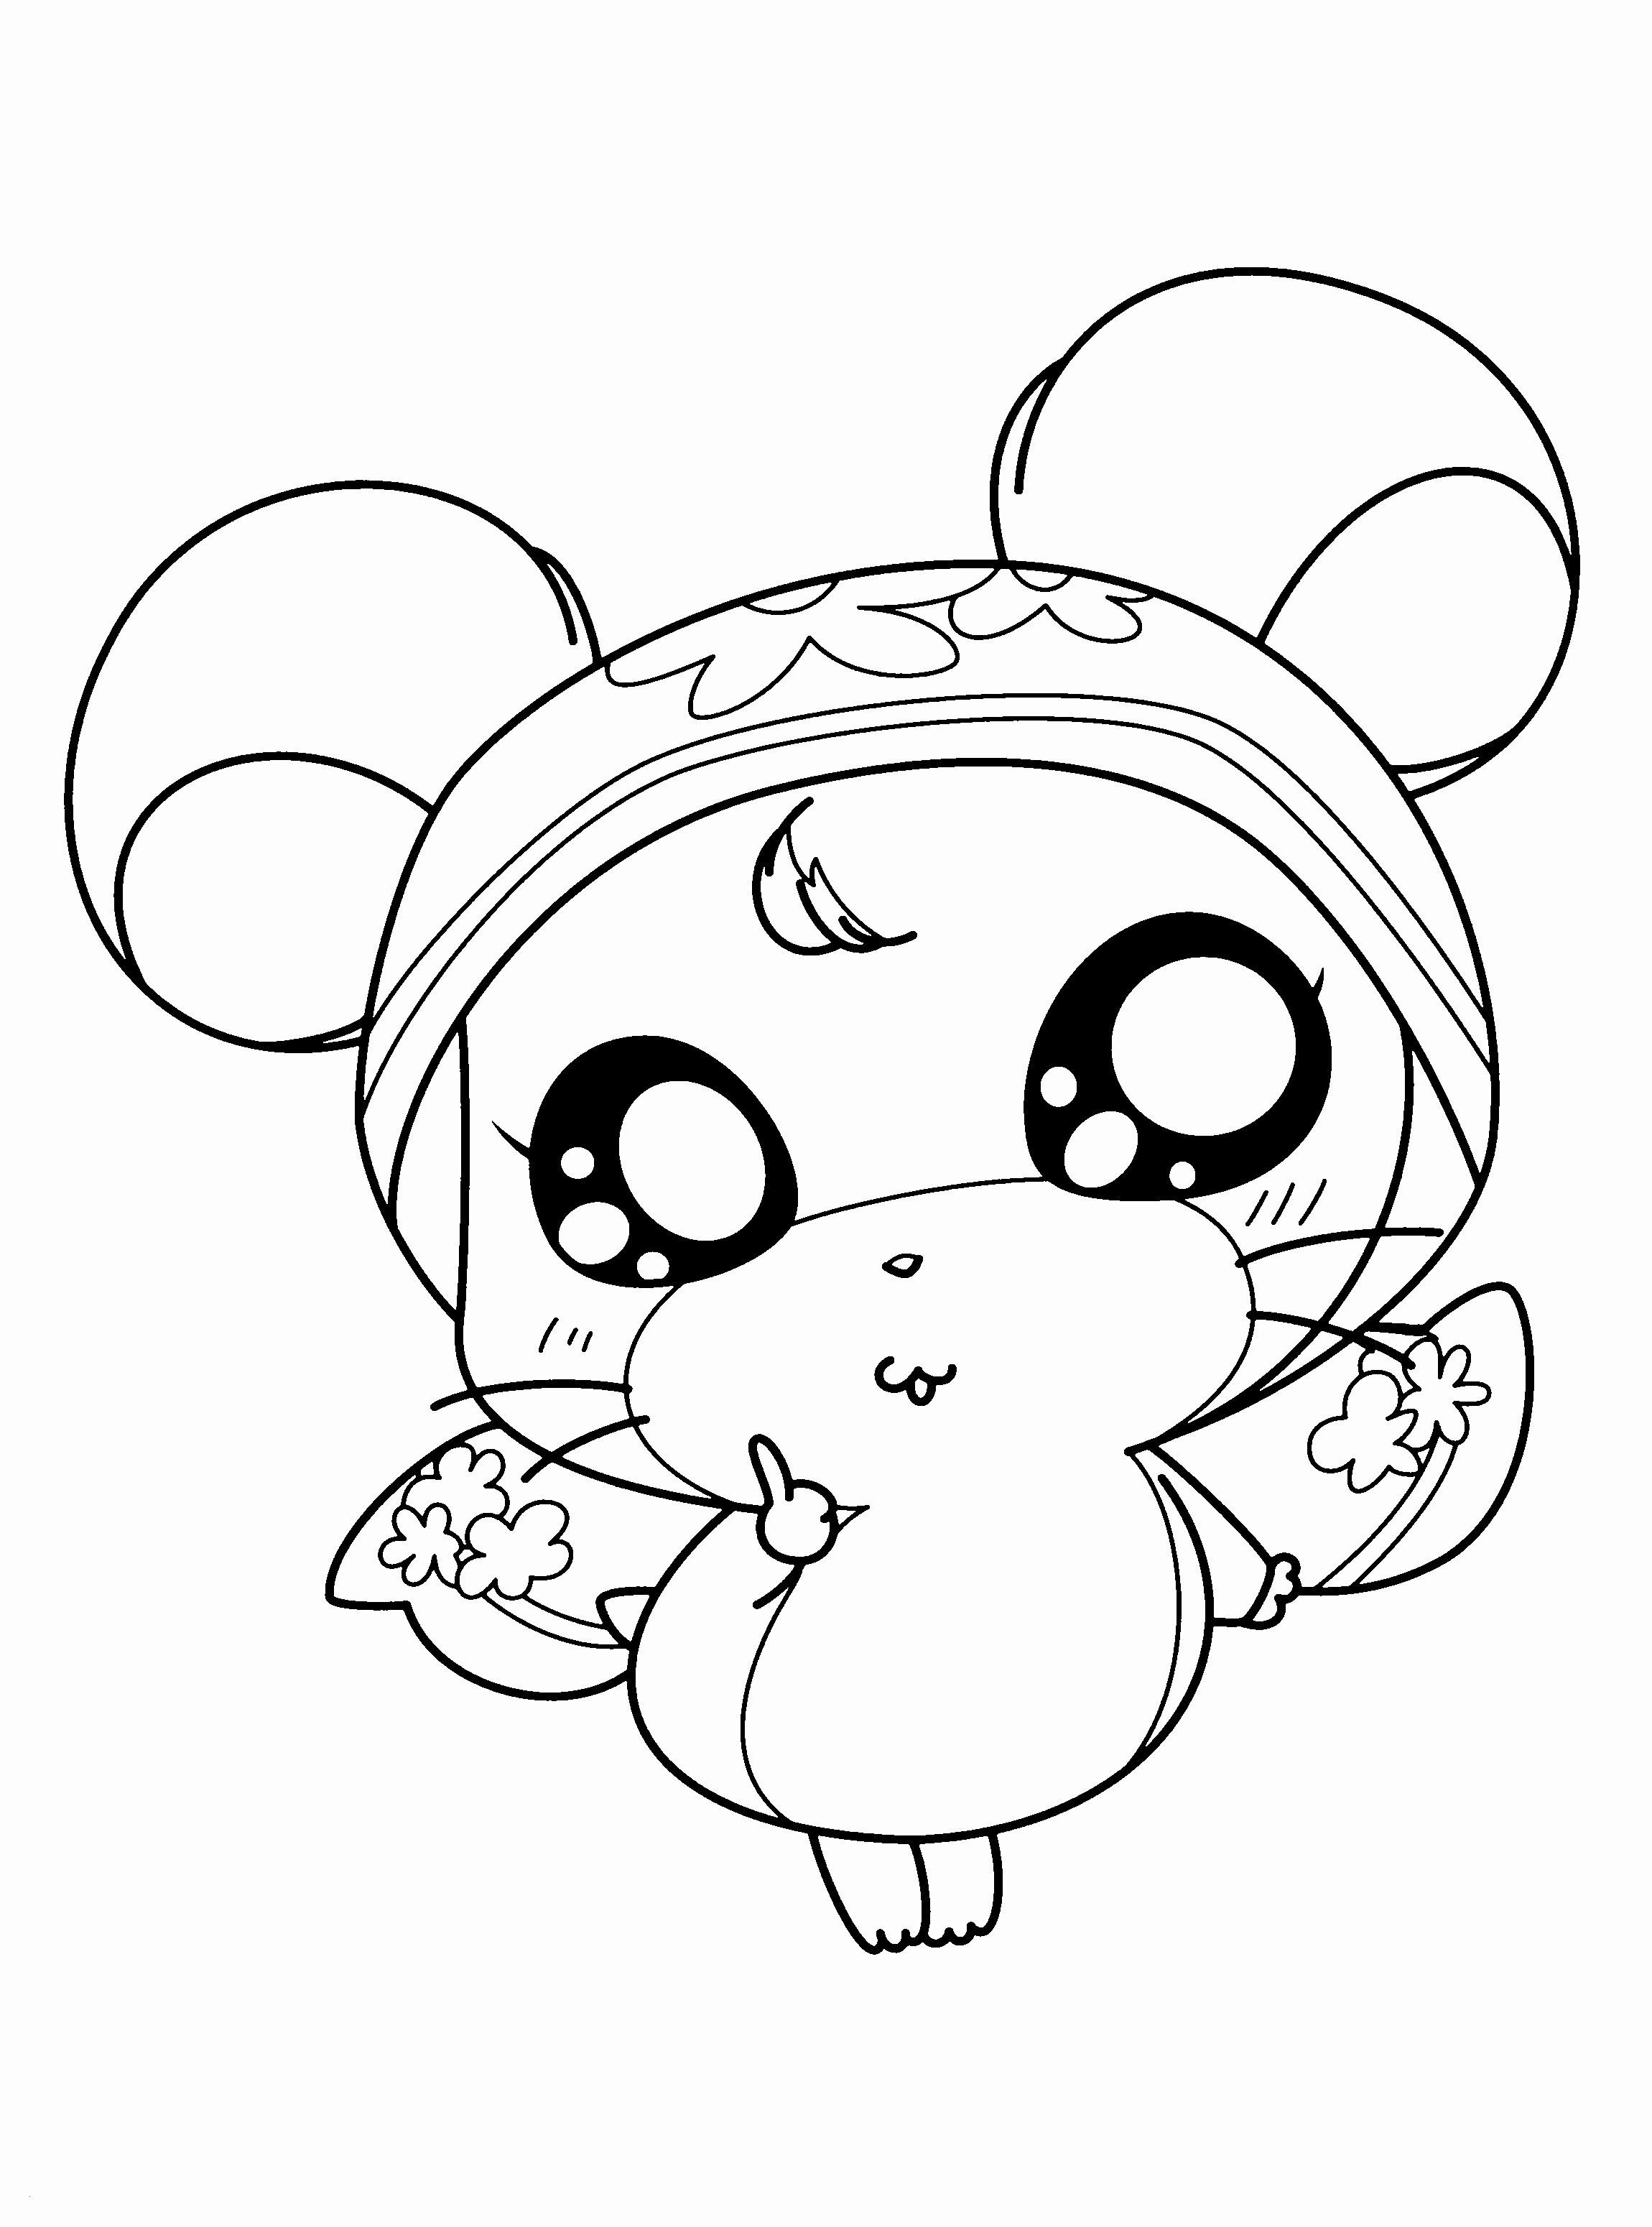 coloring pictures of pigs pig coloring pages getcoloringpagescom pigs pictures coloring of